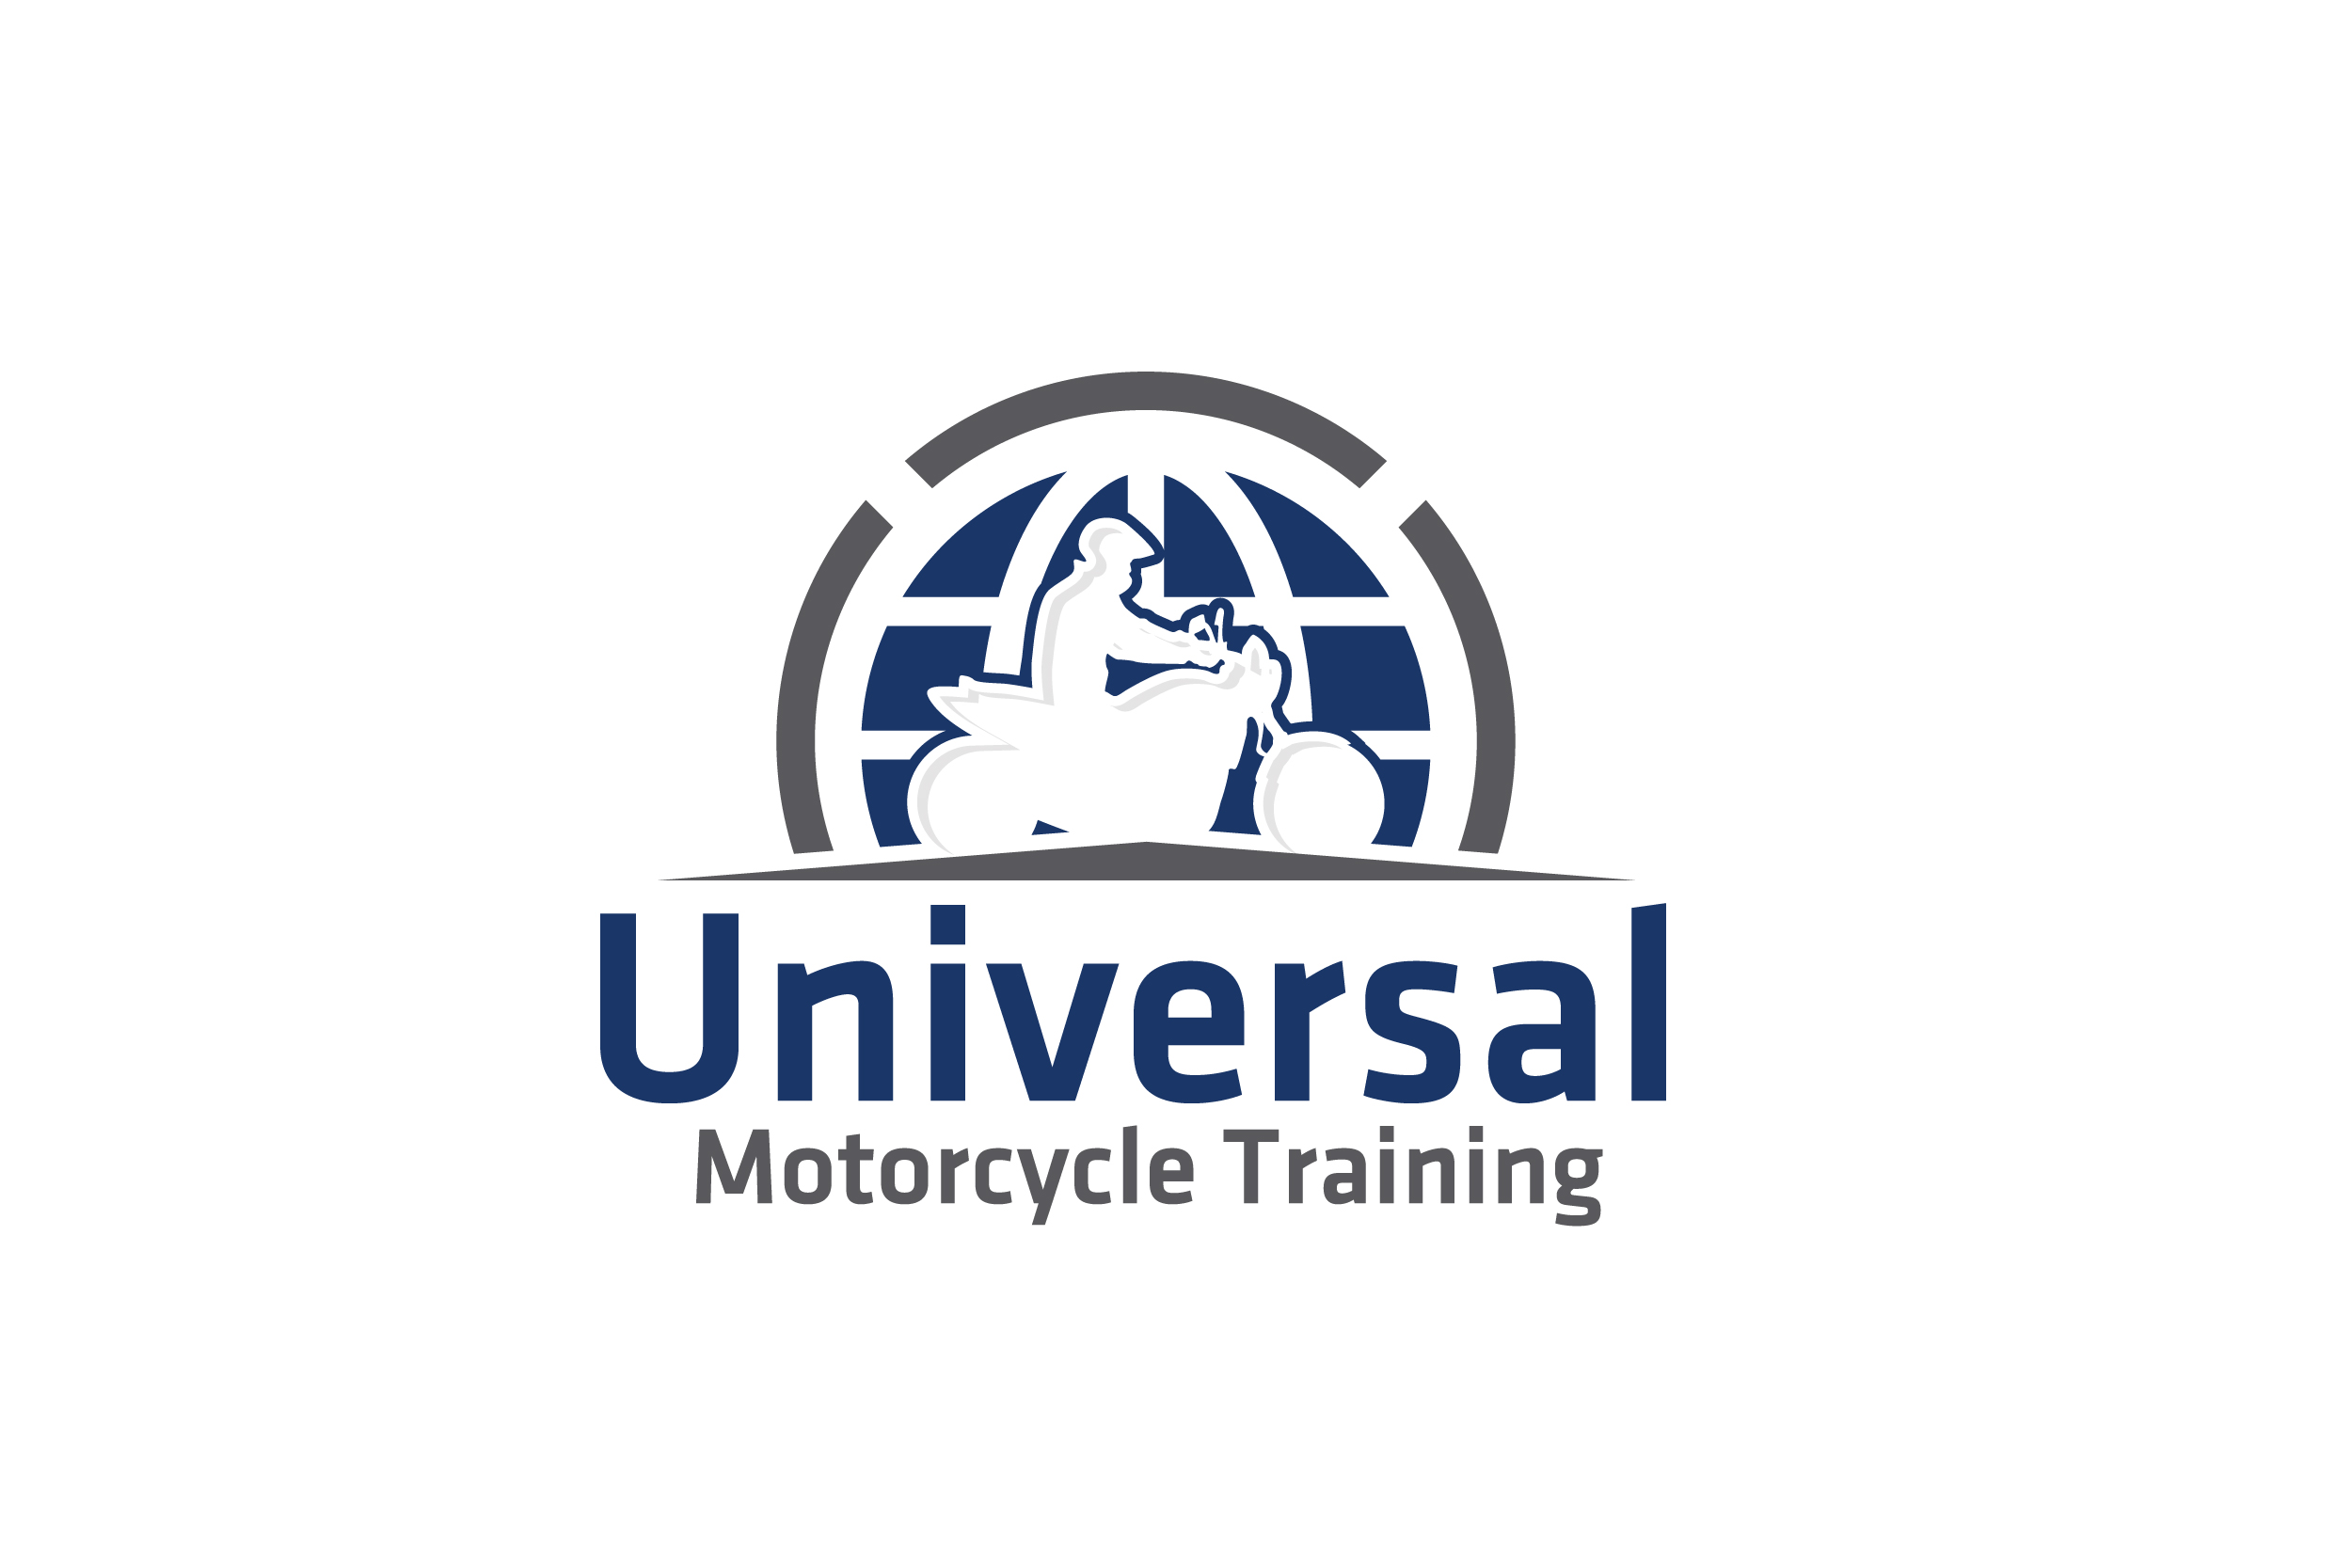 Universal Motorcycle Training - www.universalmct.co.uk